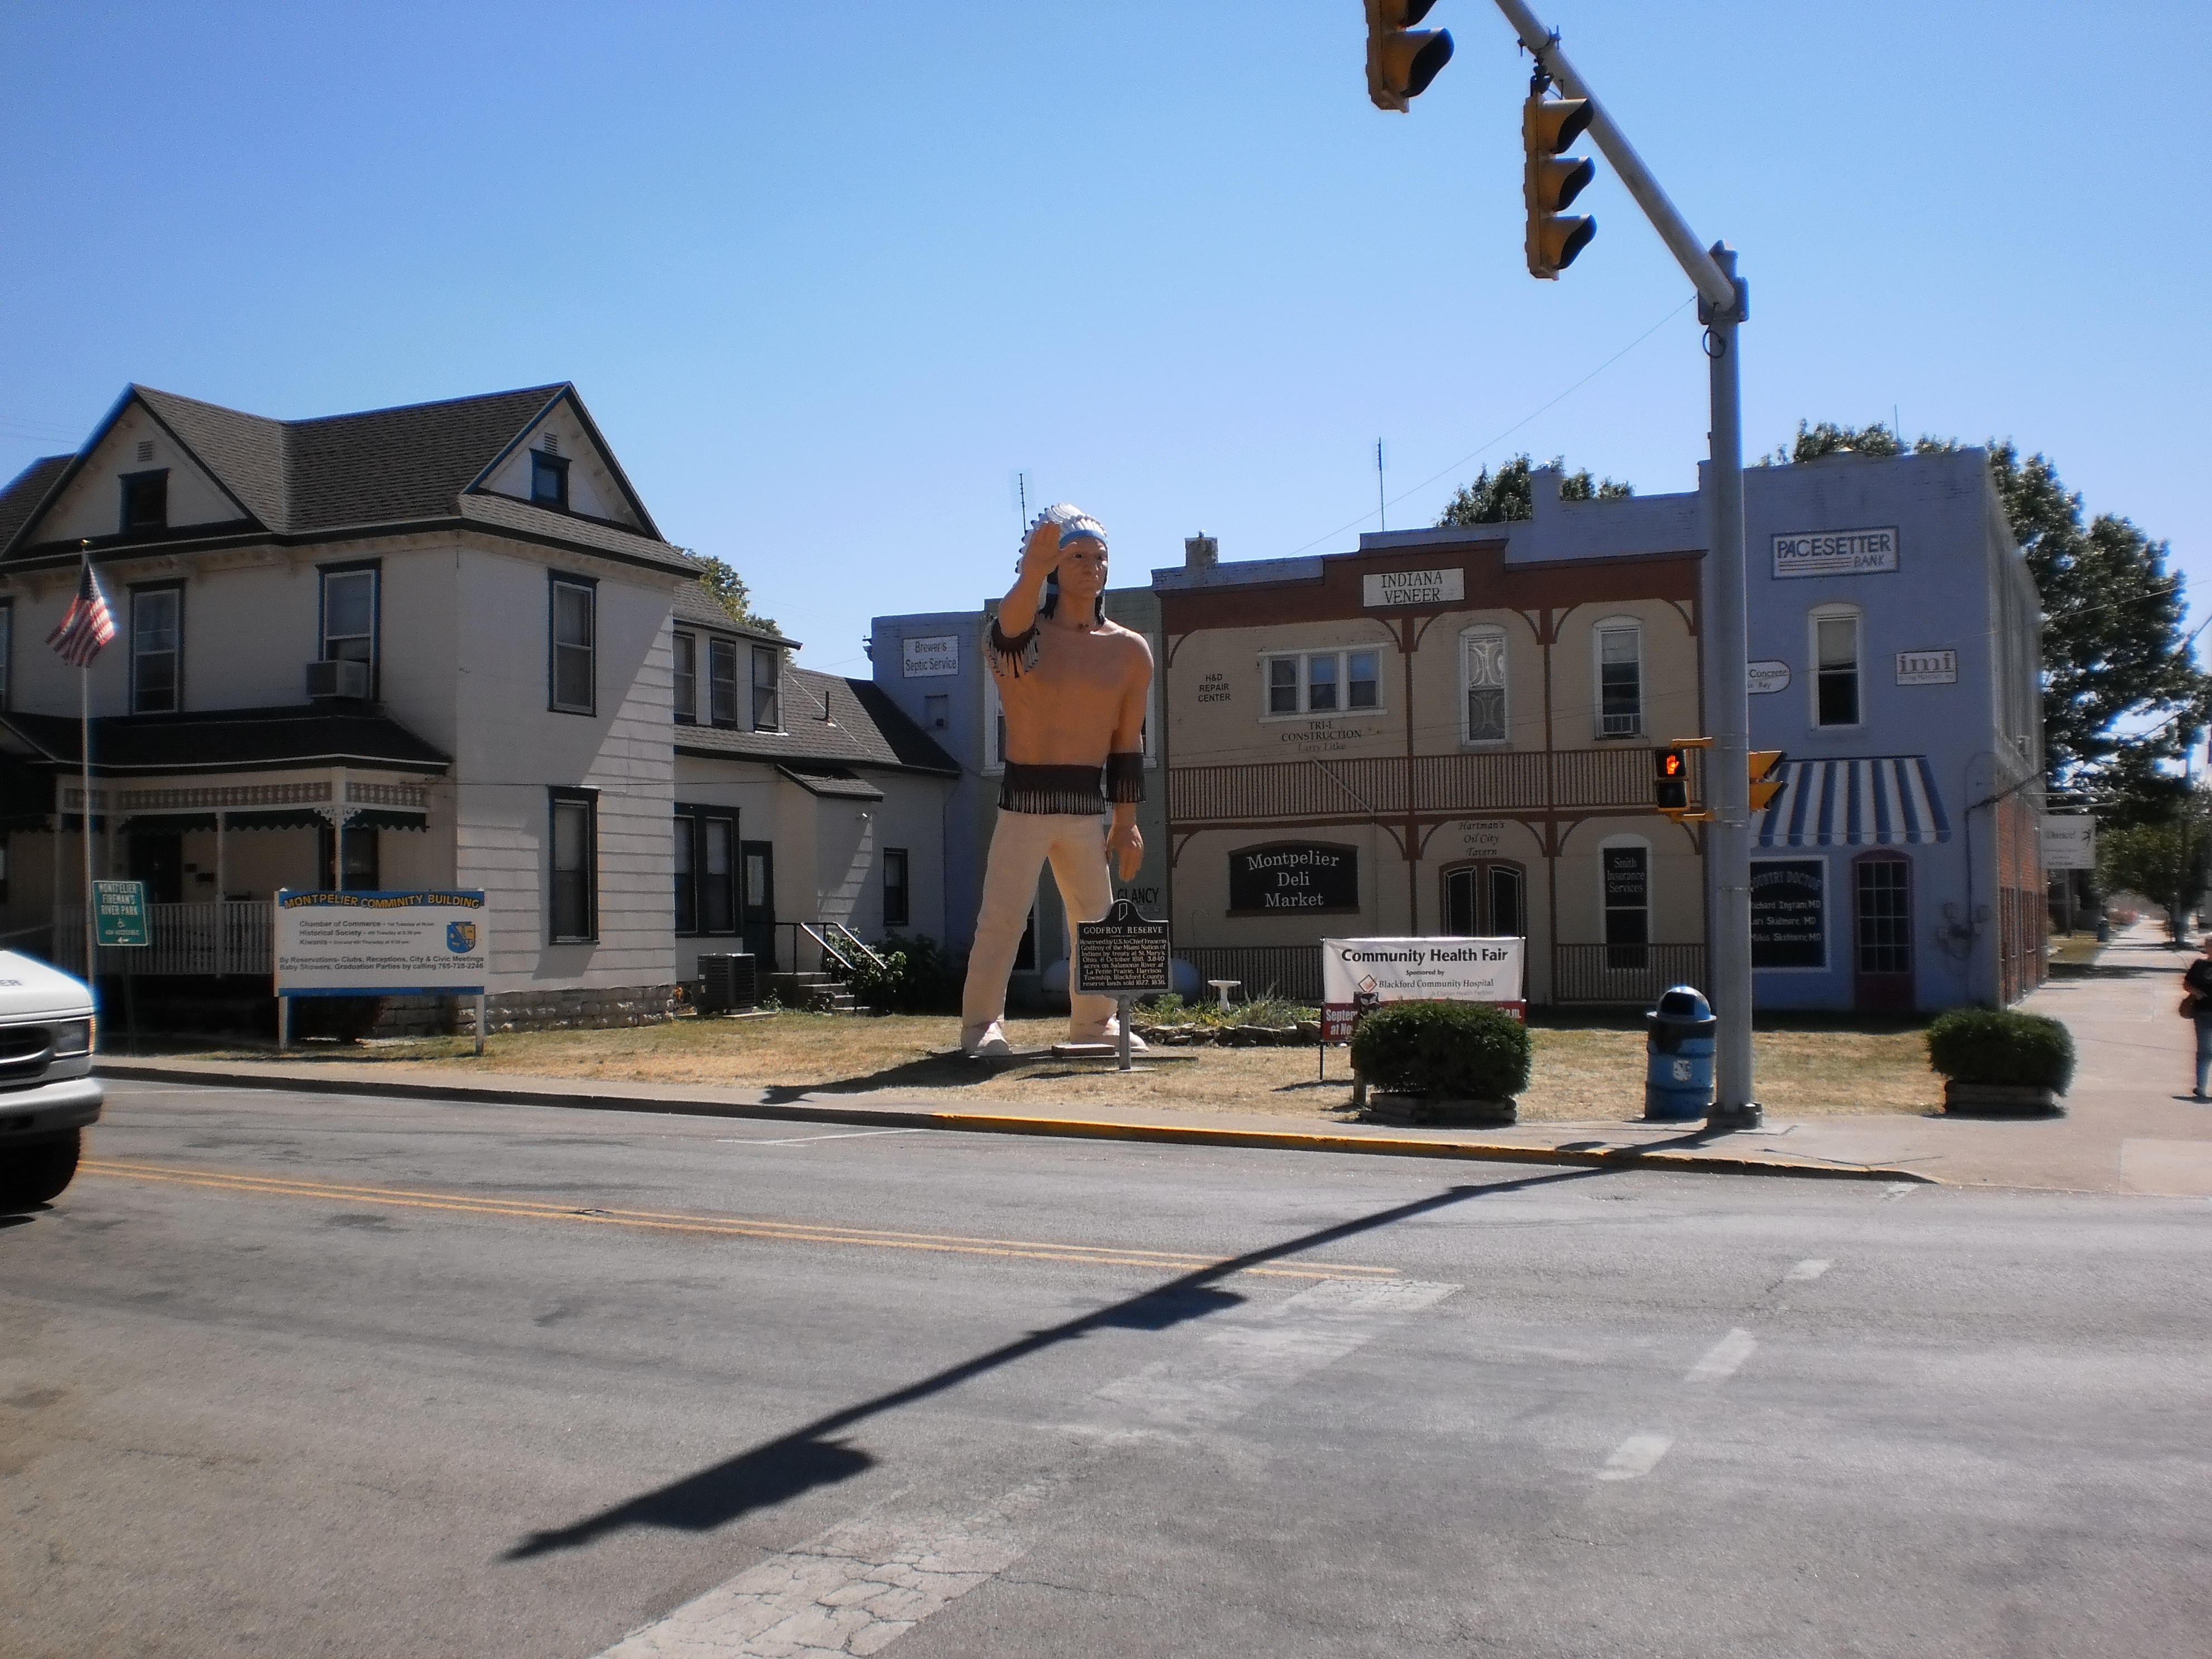 Small Indiana Towns Small Town With Indian Statue